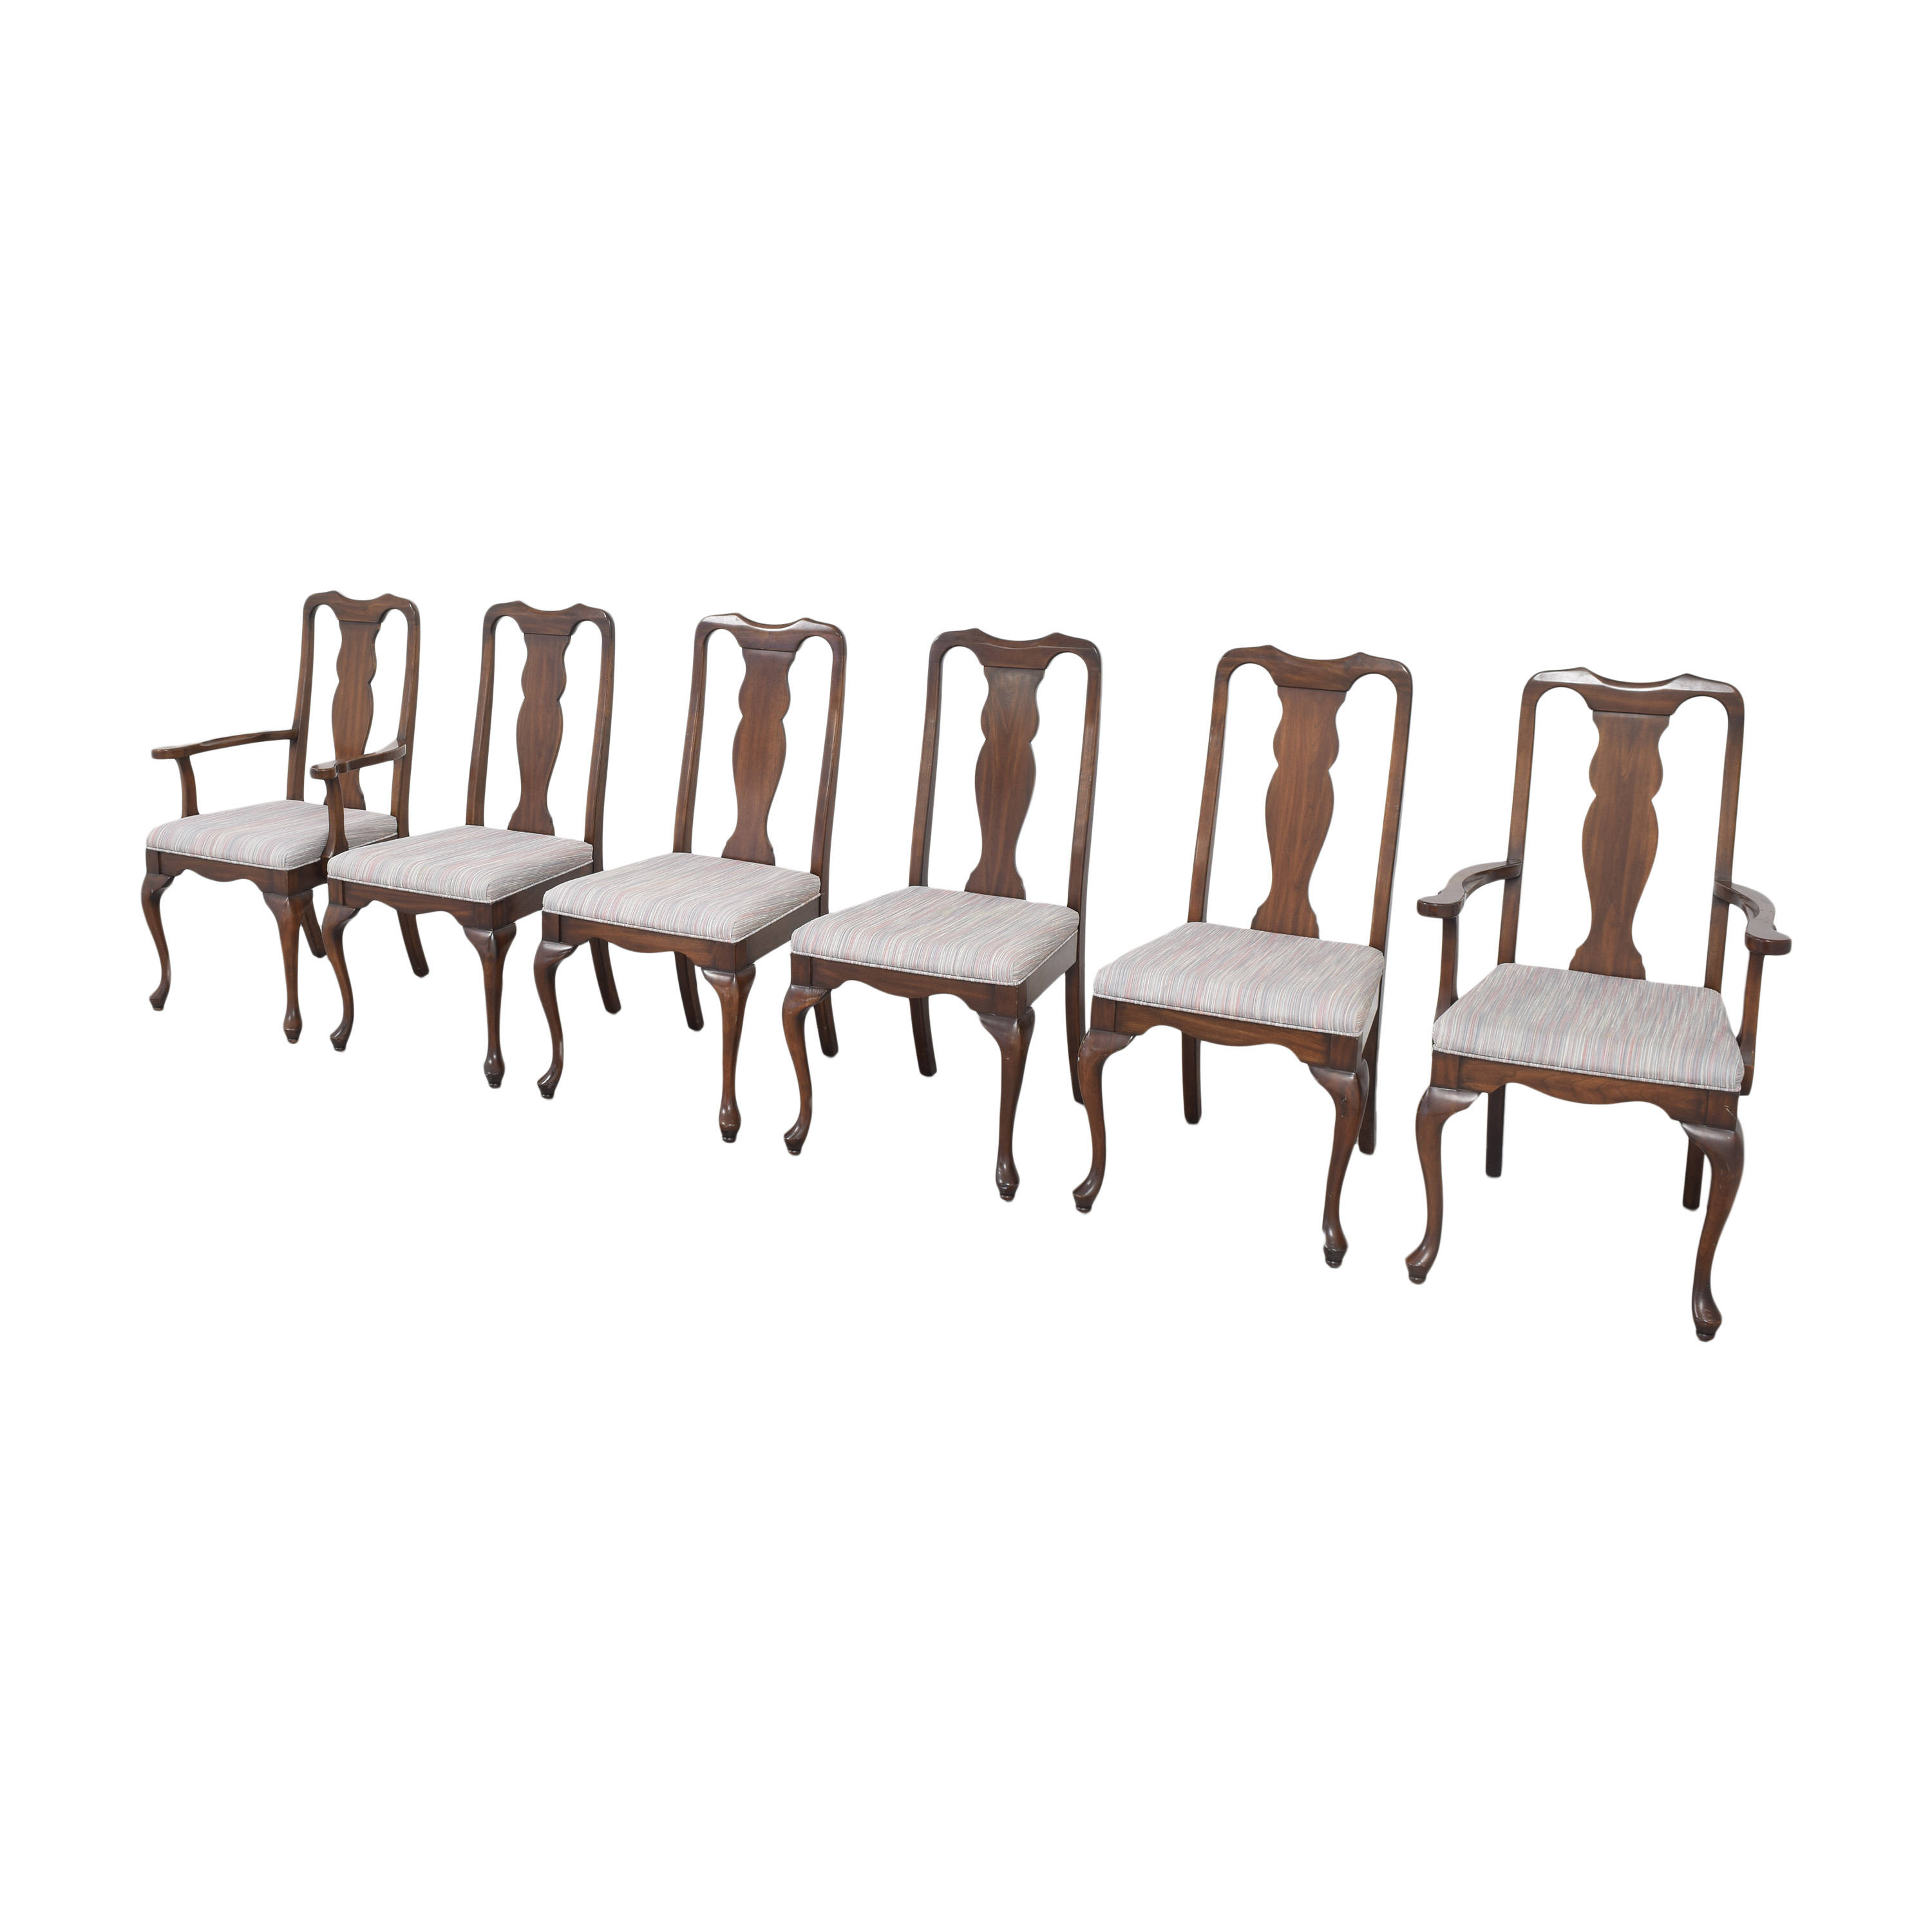 Harden Harden Upholstered Dining Chairs coupon